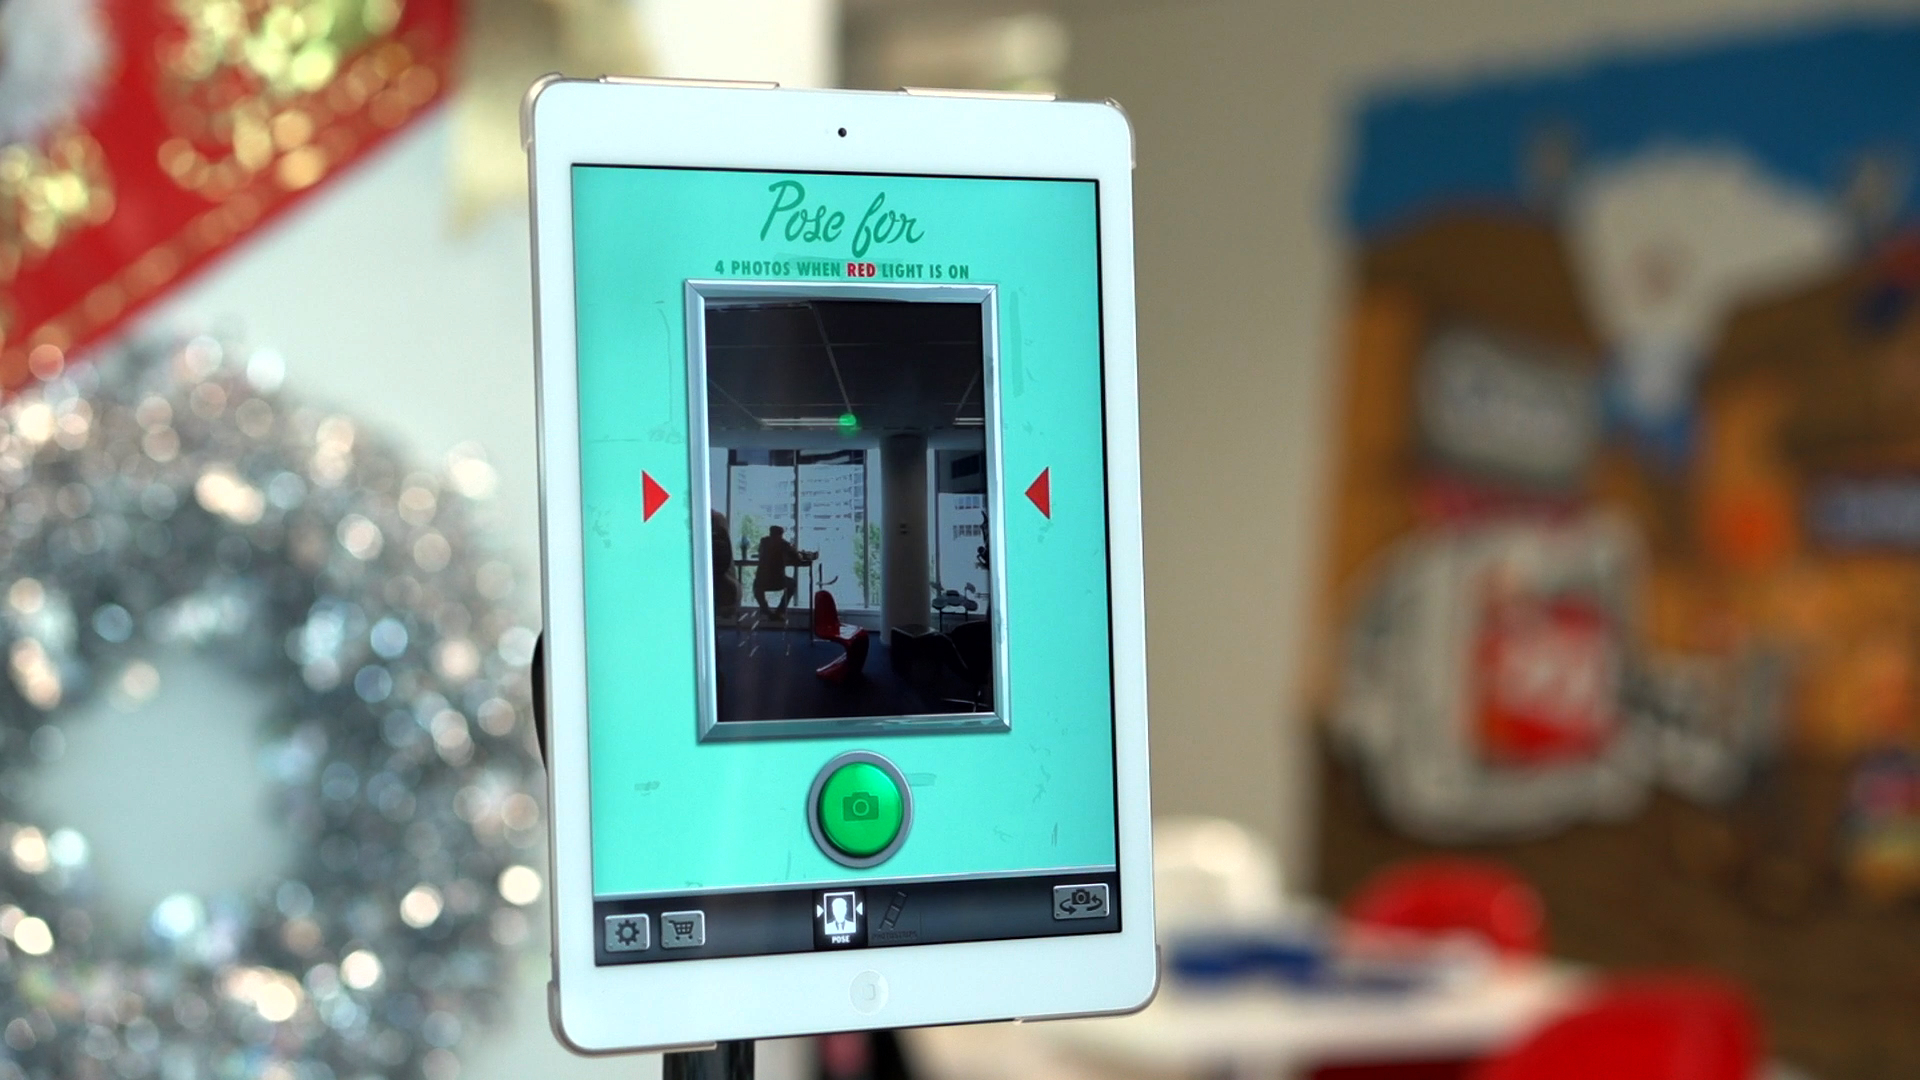 Video: Turn your iPad into a DIY photo booth